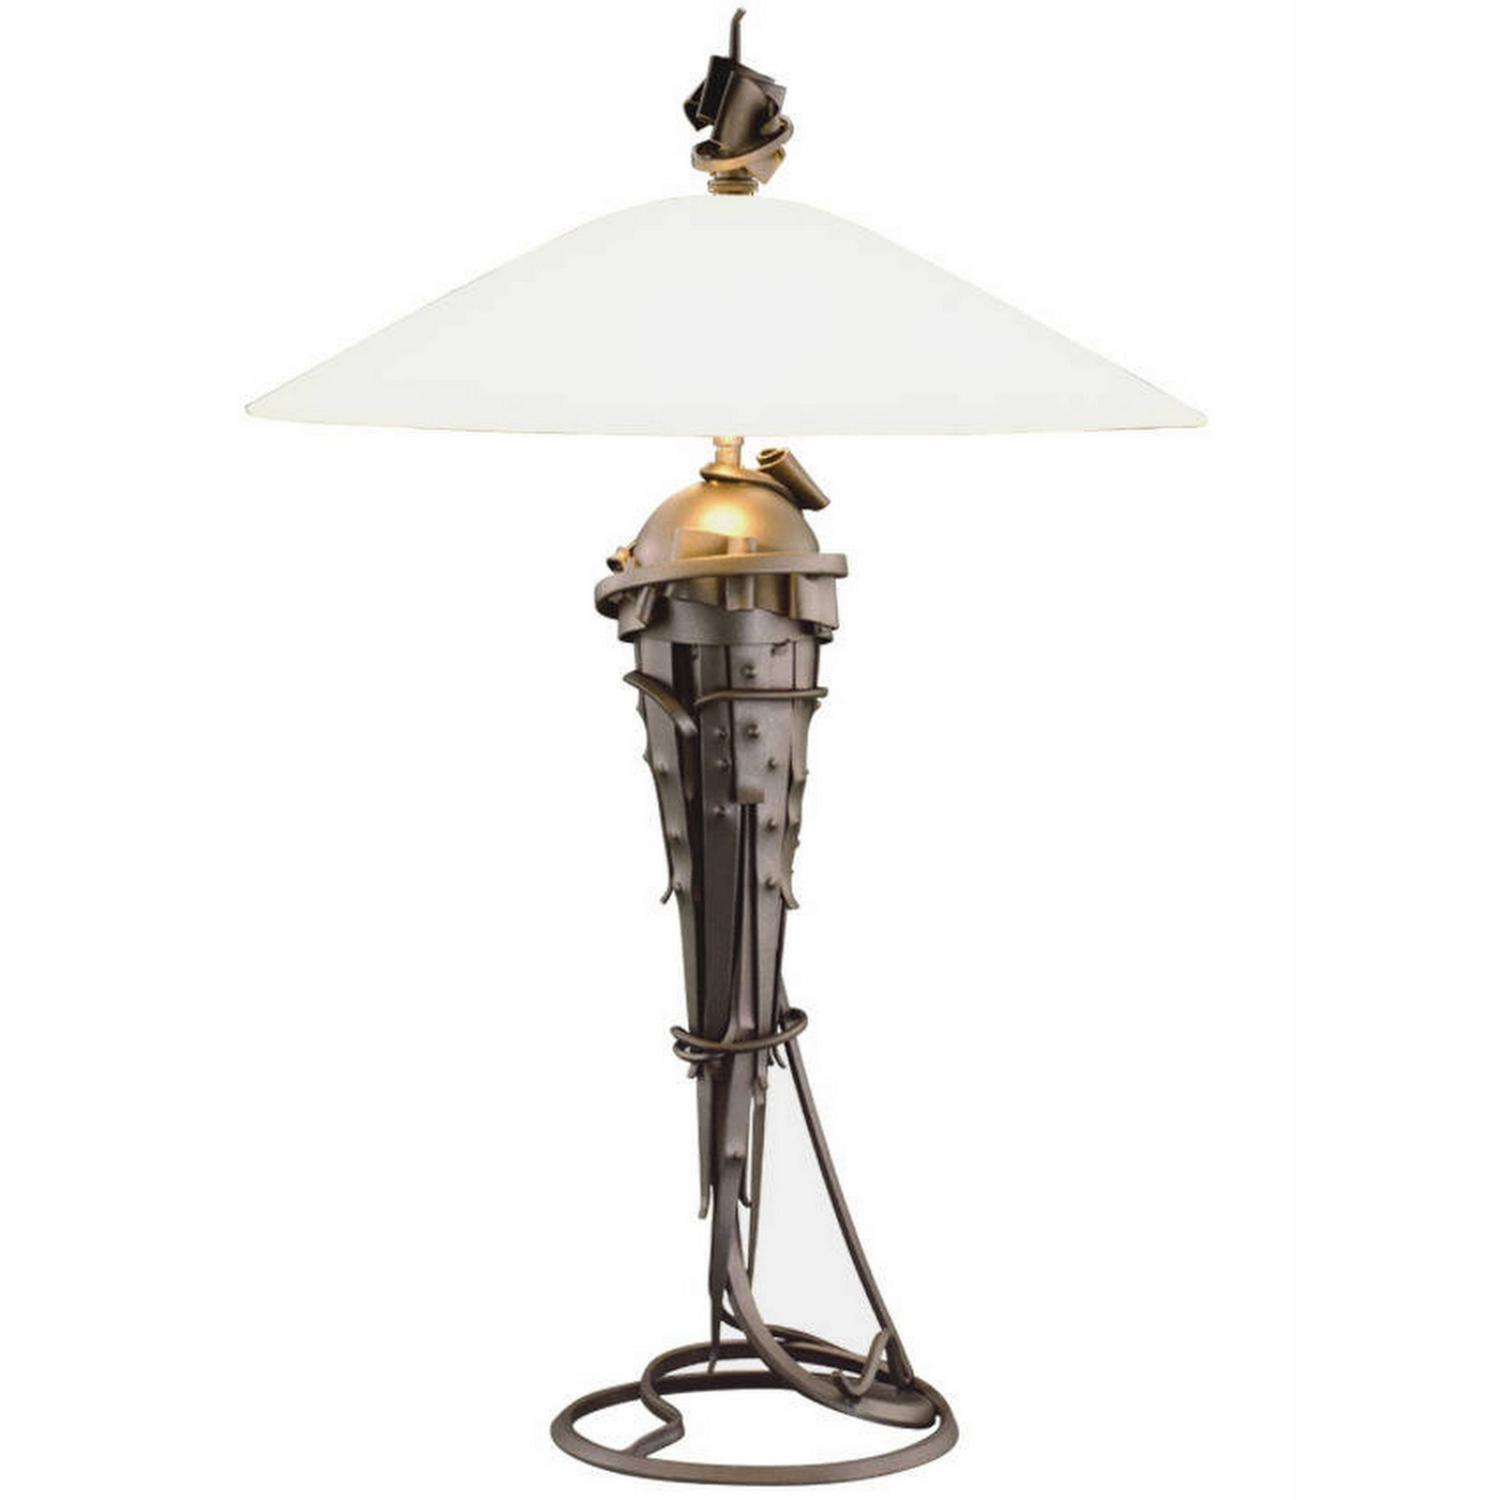 Albert paley large comet table lamp metal and glass for Jill alberts jewelry highland park